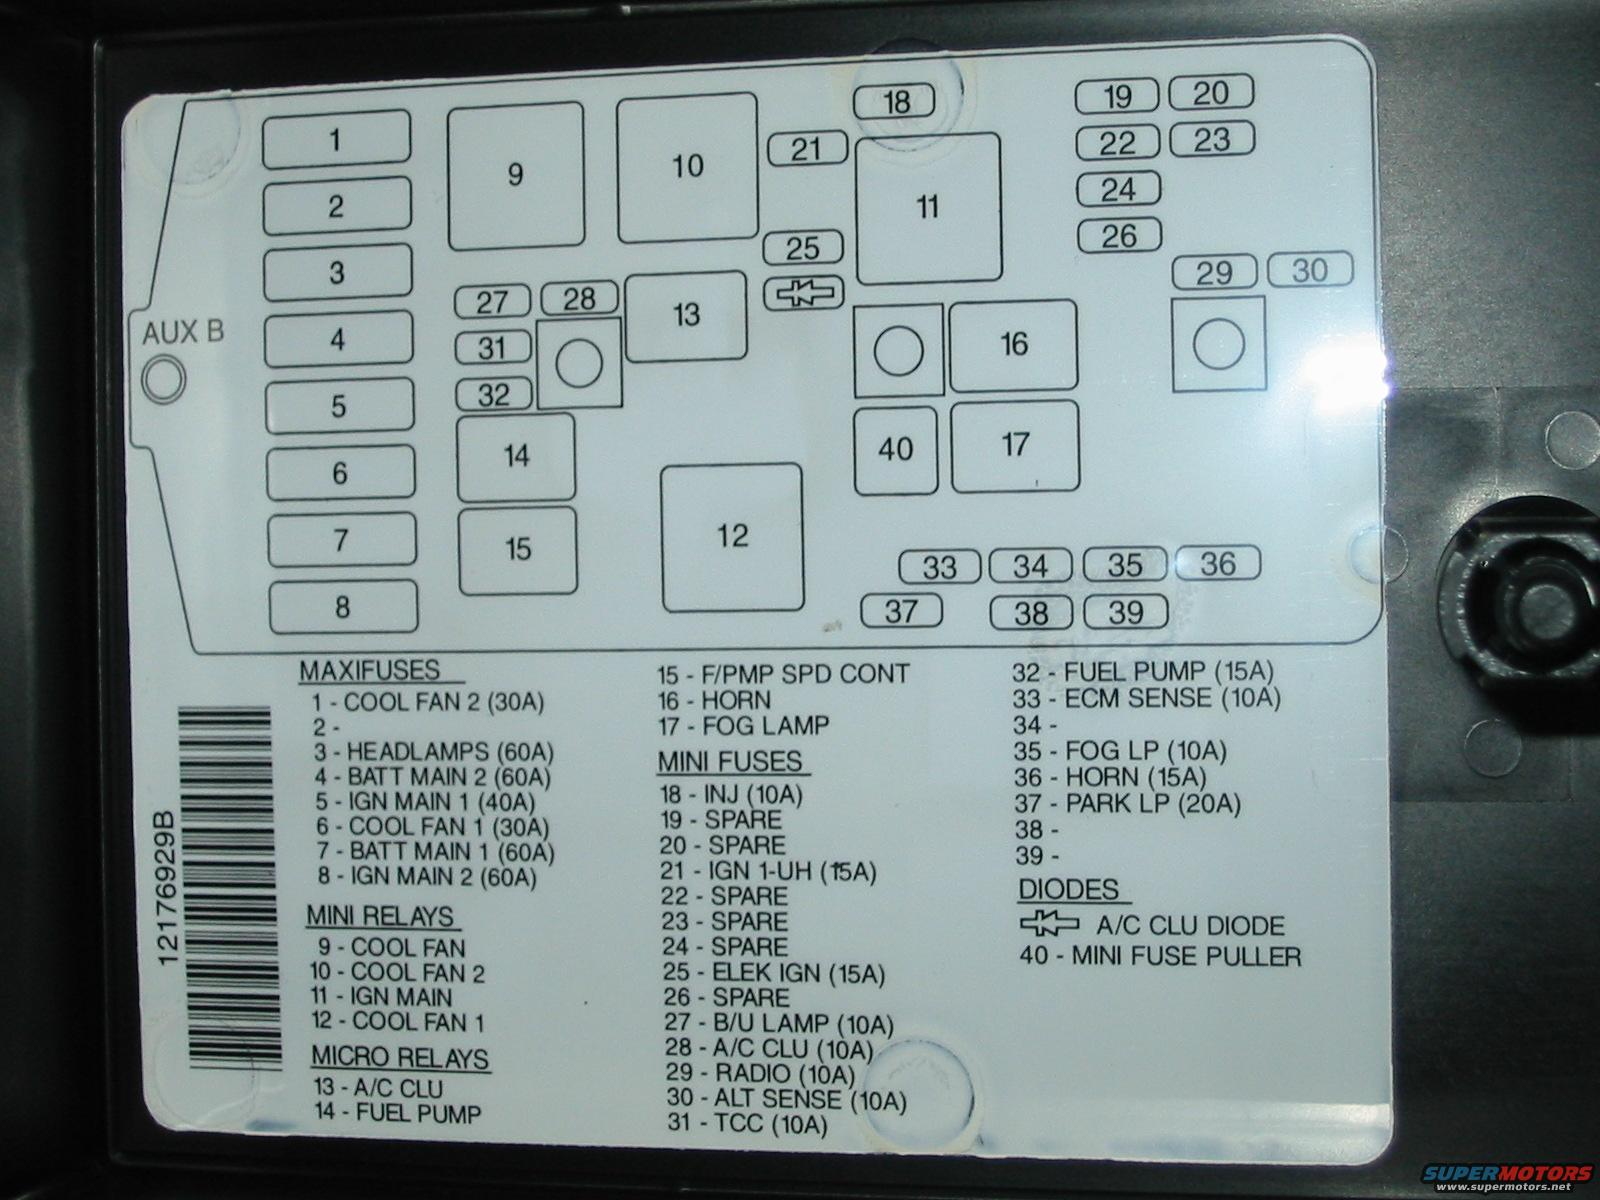 Relay Fuse Diagram Books Of Wiring 2003 Chrysler Voyager Box Blower Motor 98 Grand Prix Resistorblower Block